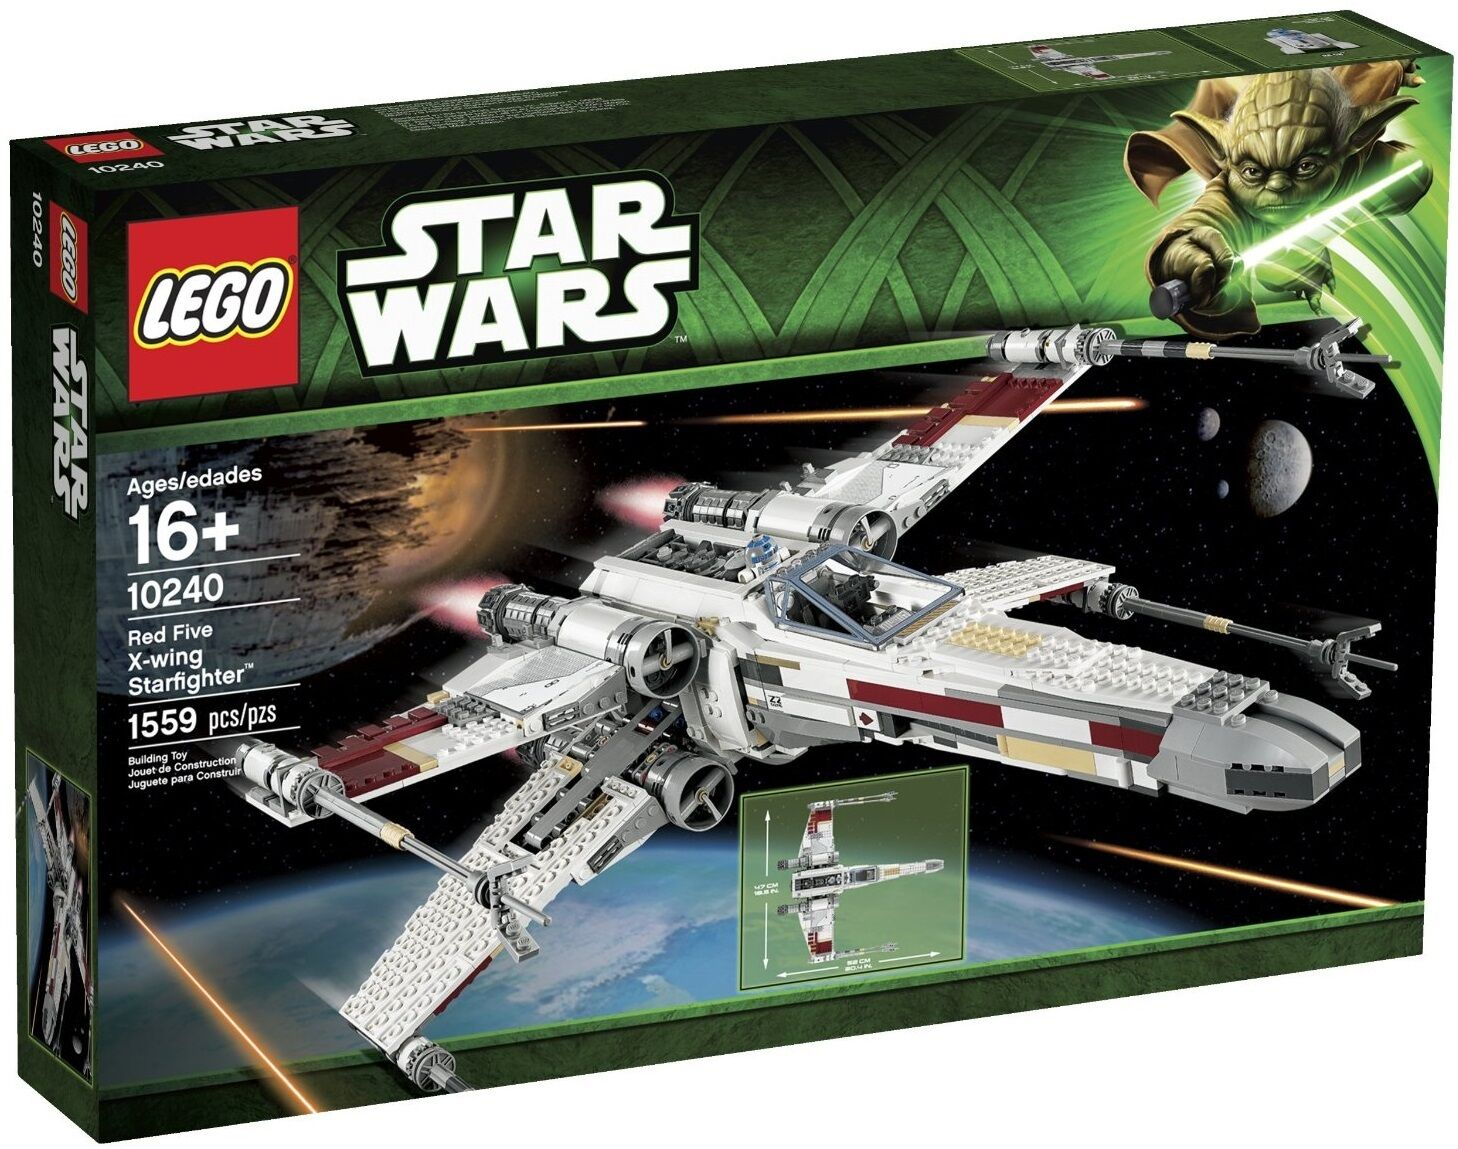 LEGO Star Wars rosso Five X-Wing Starfighter 10240 Retirosso Ultimate Collector UCS